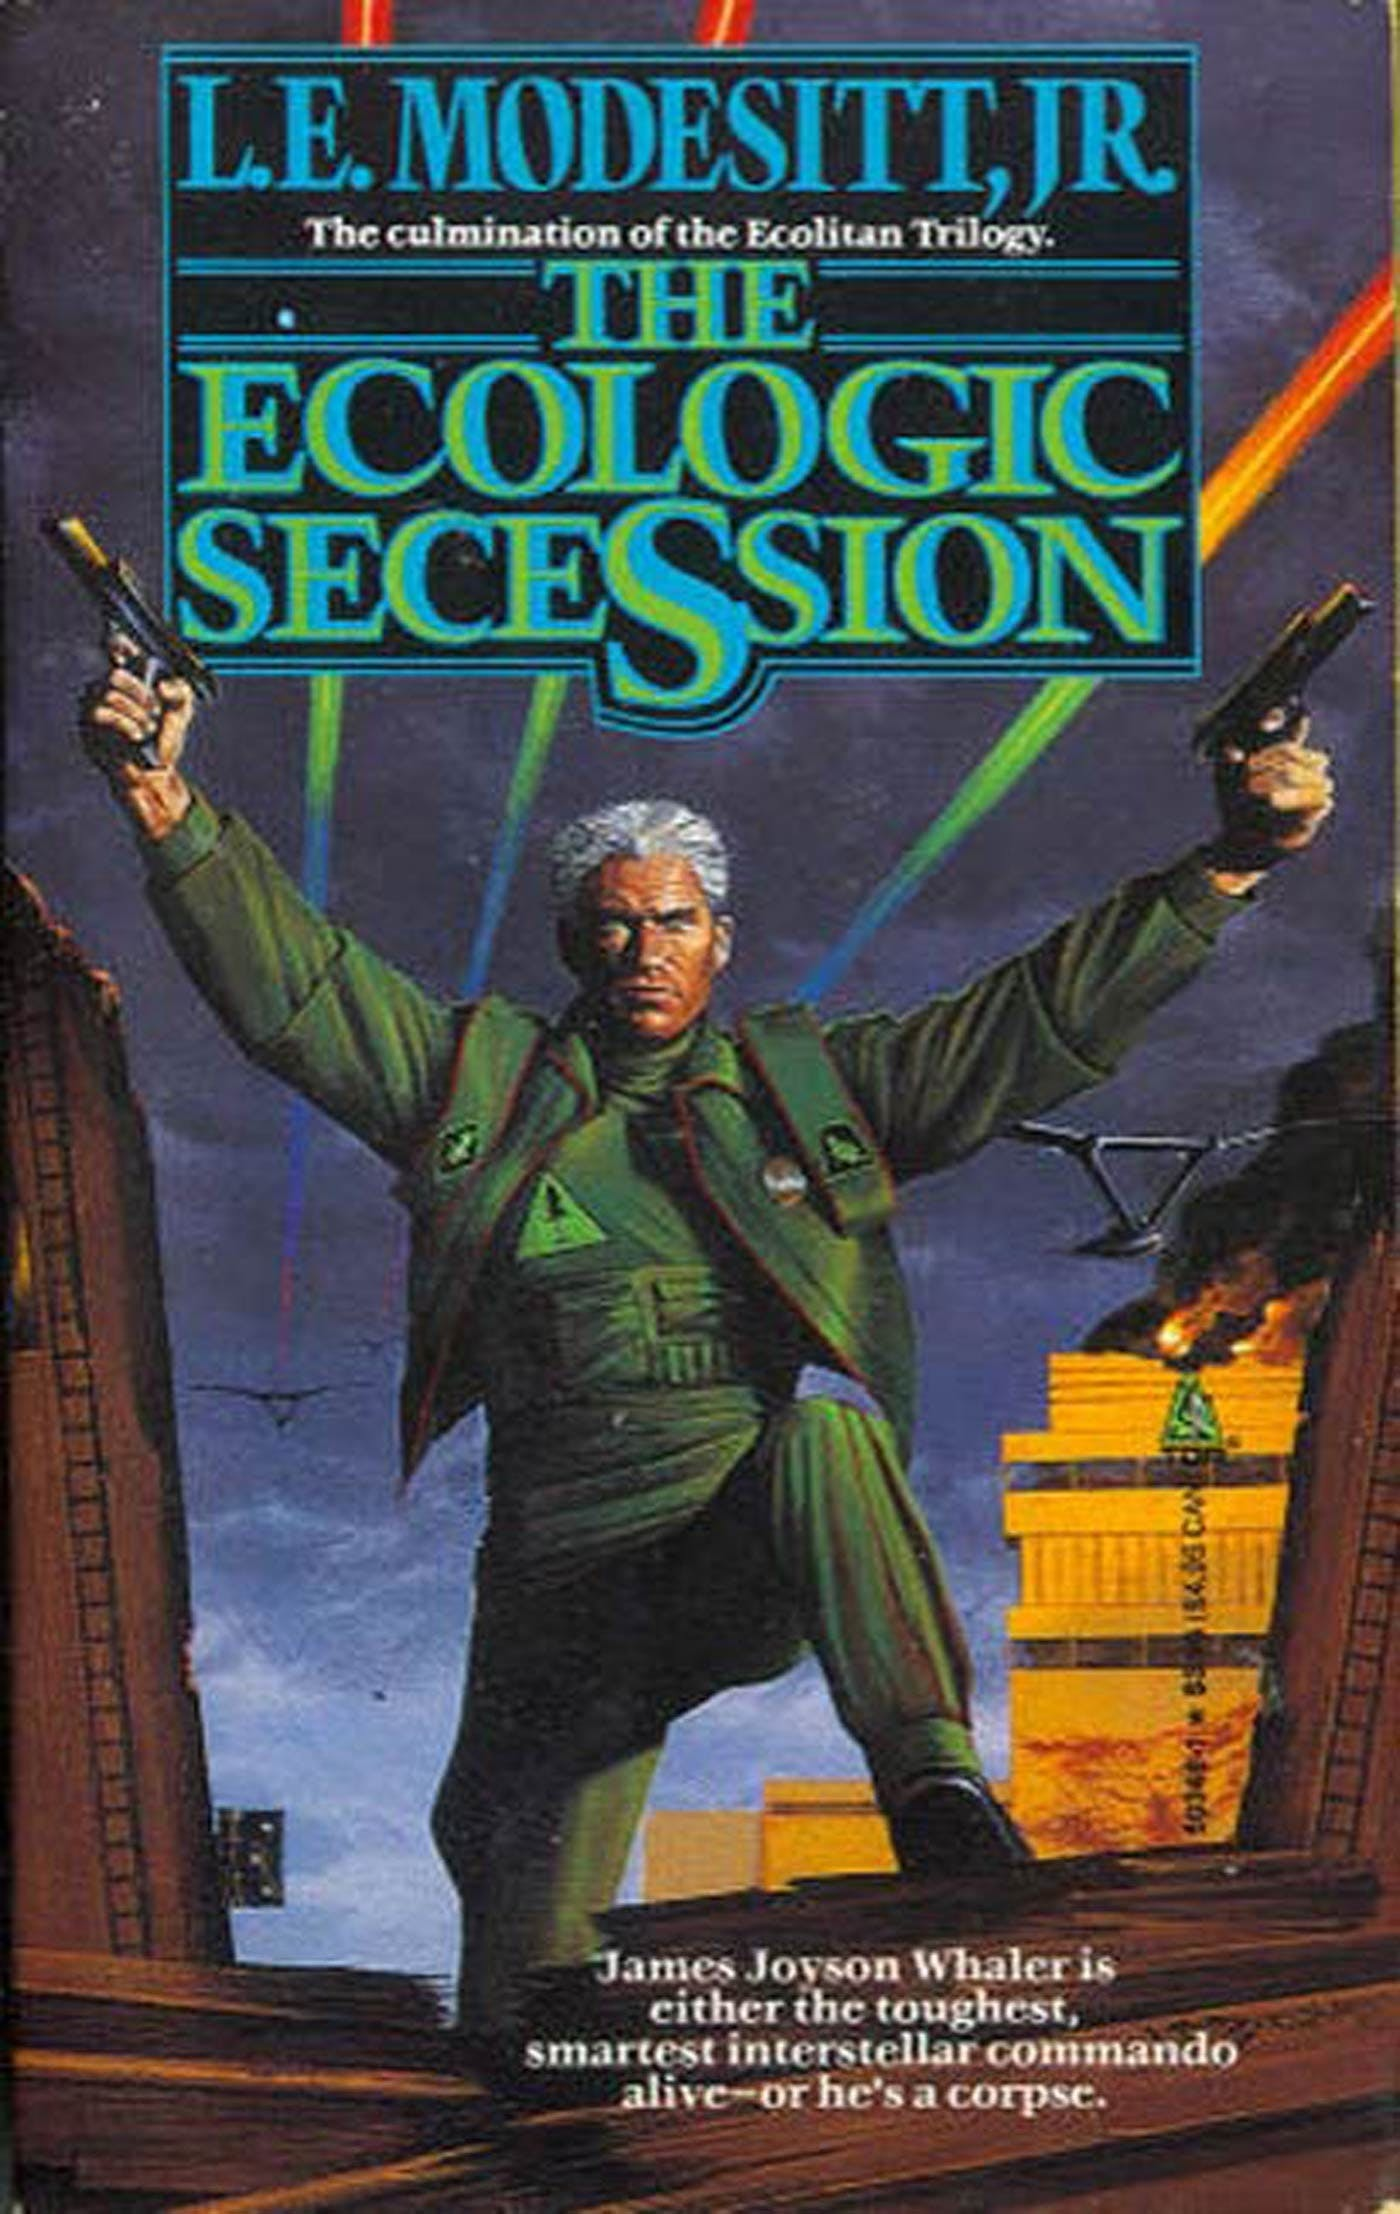 Image of The Ecologic Secession